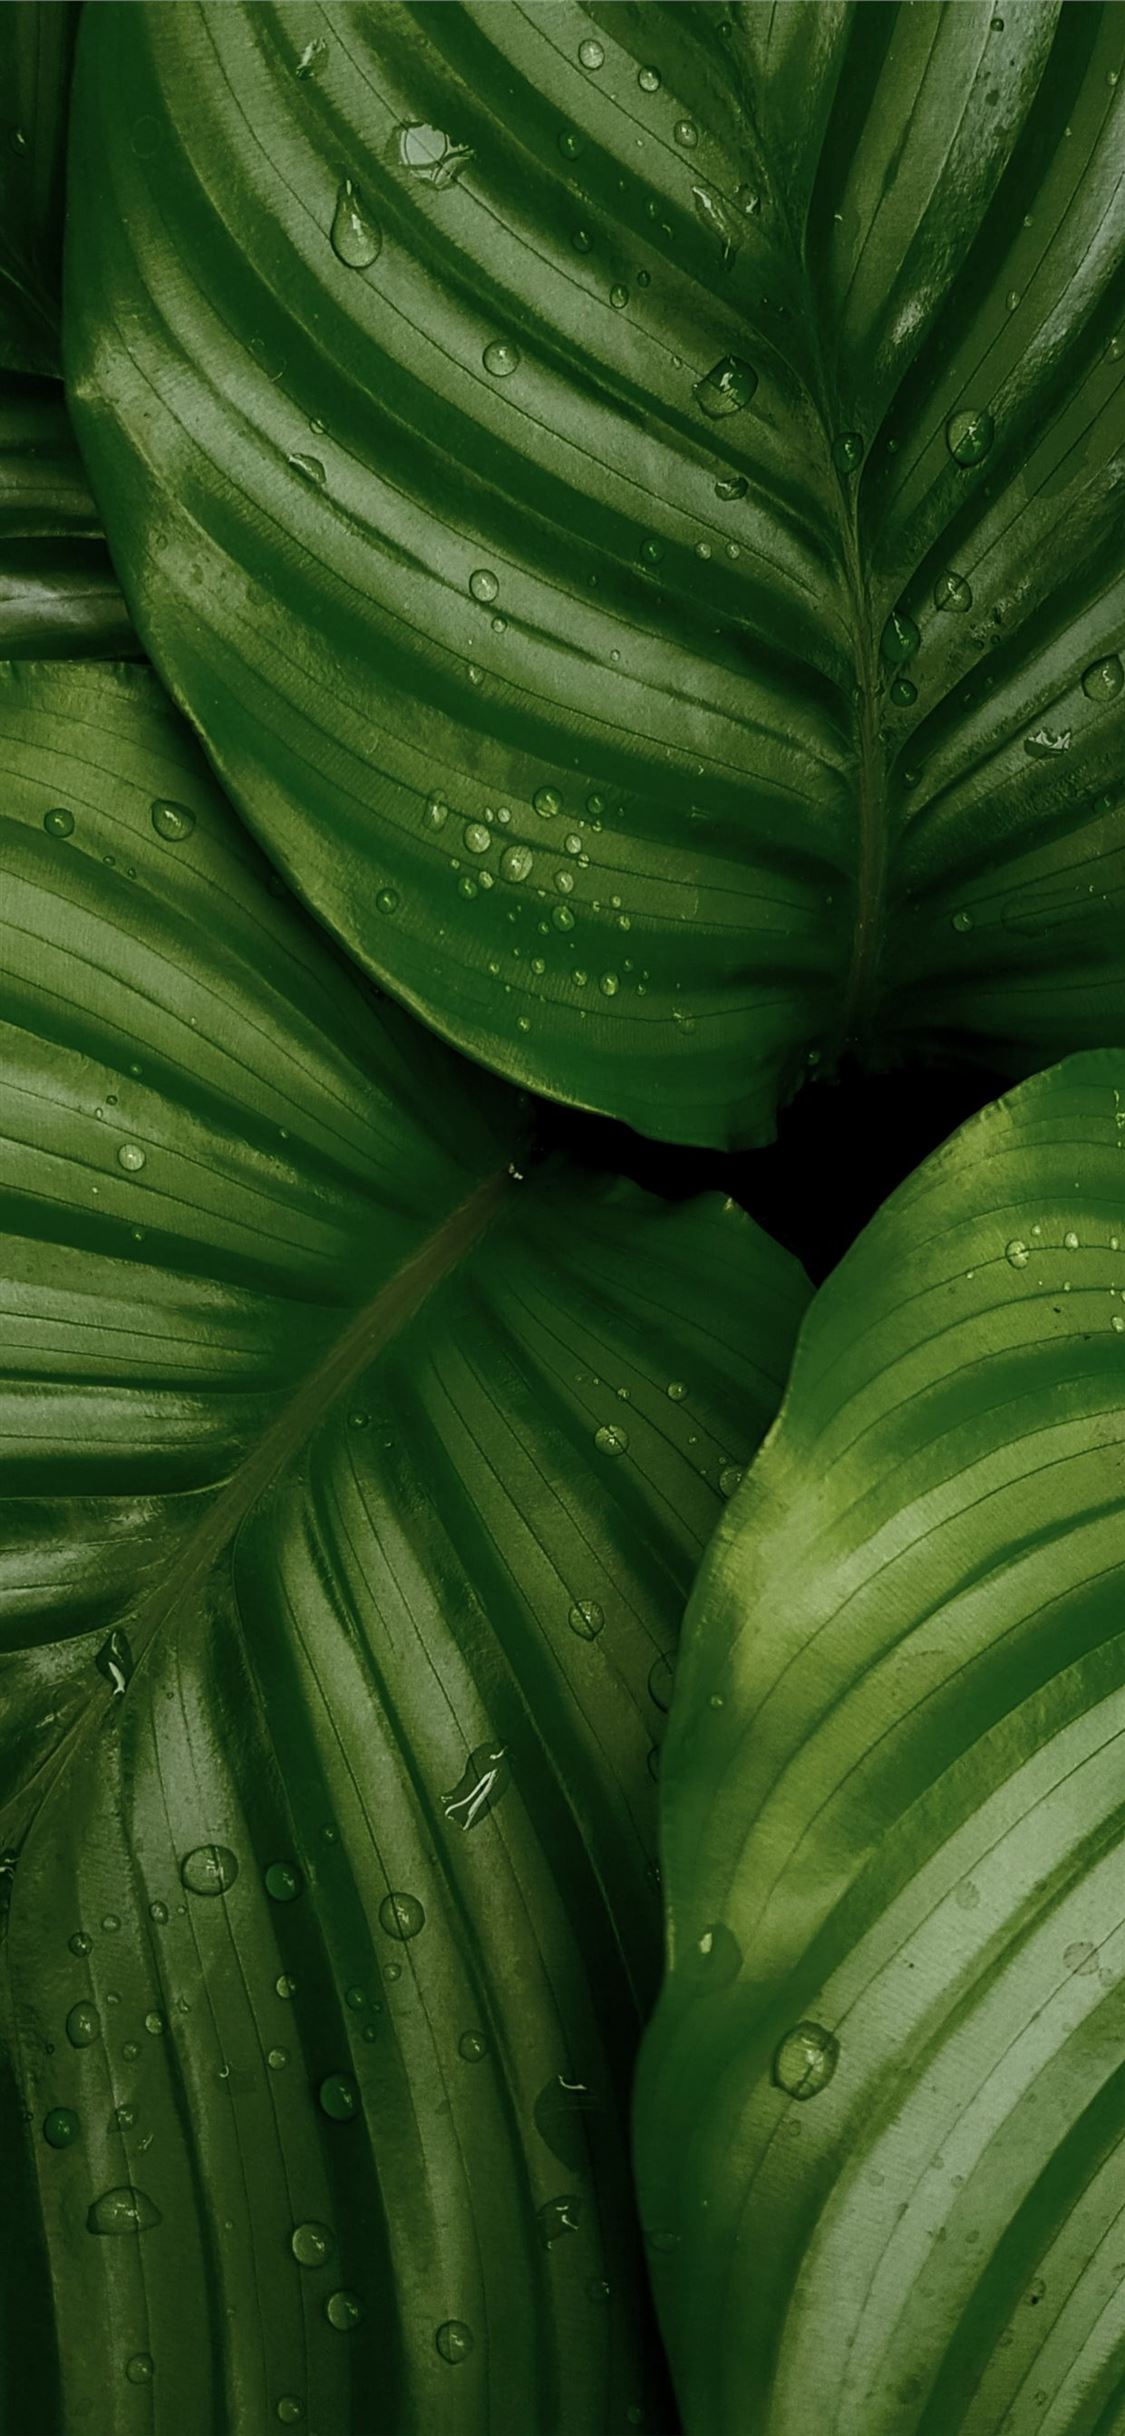 water droplets on green leaves iPhone X Wallpapers Free Download